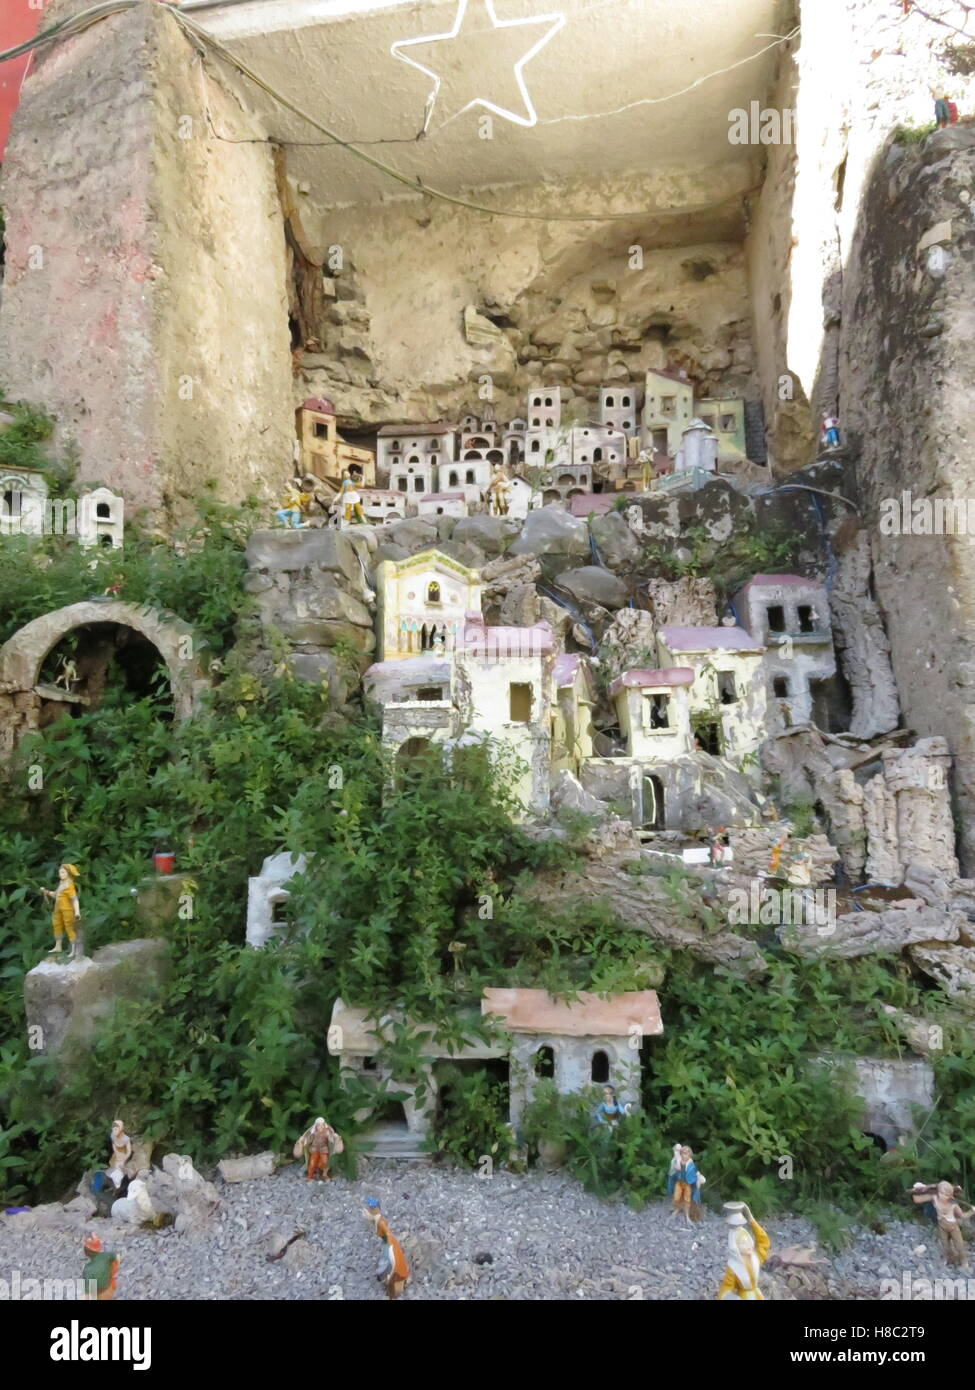 Model village in Amalfi - Stock Image